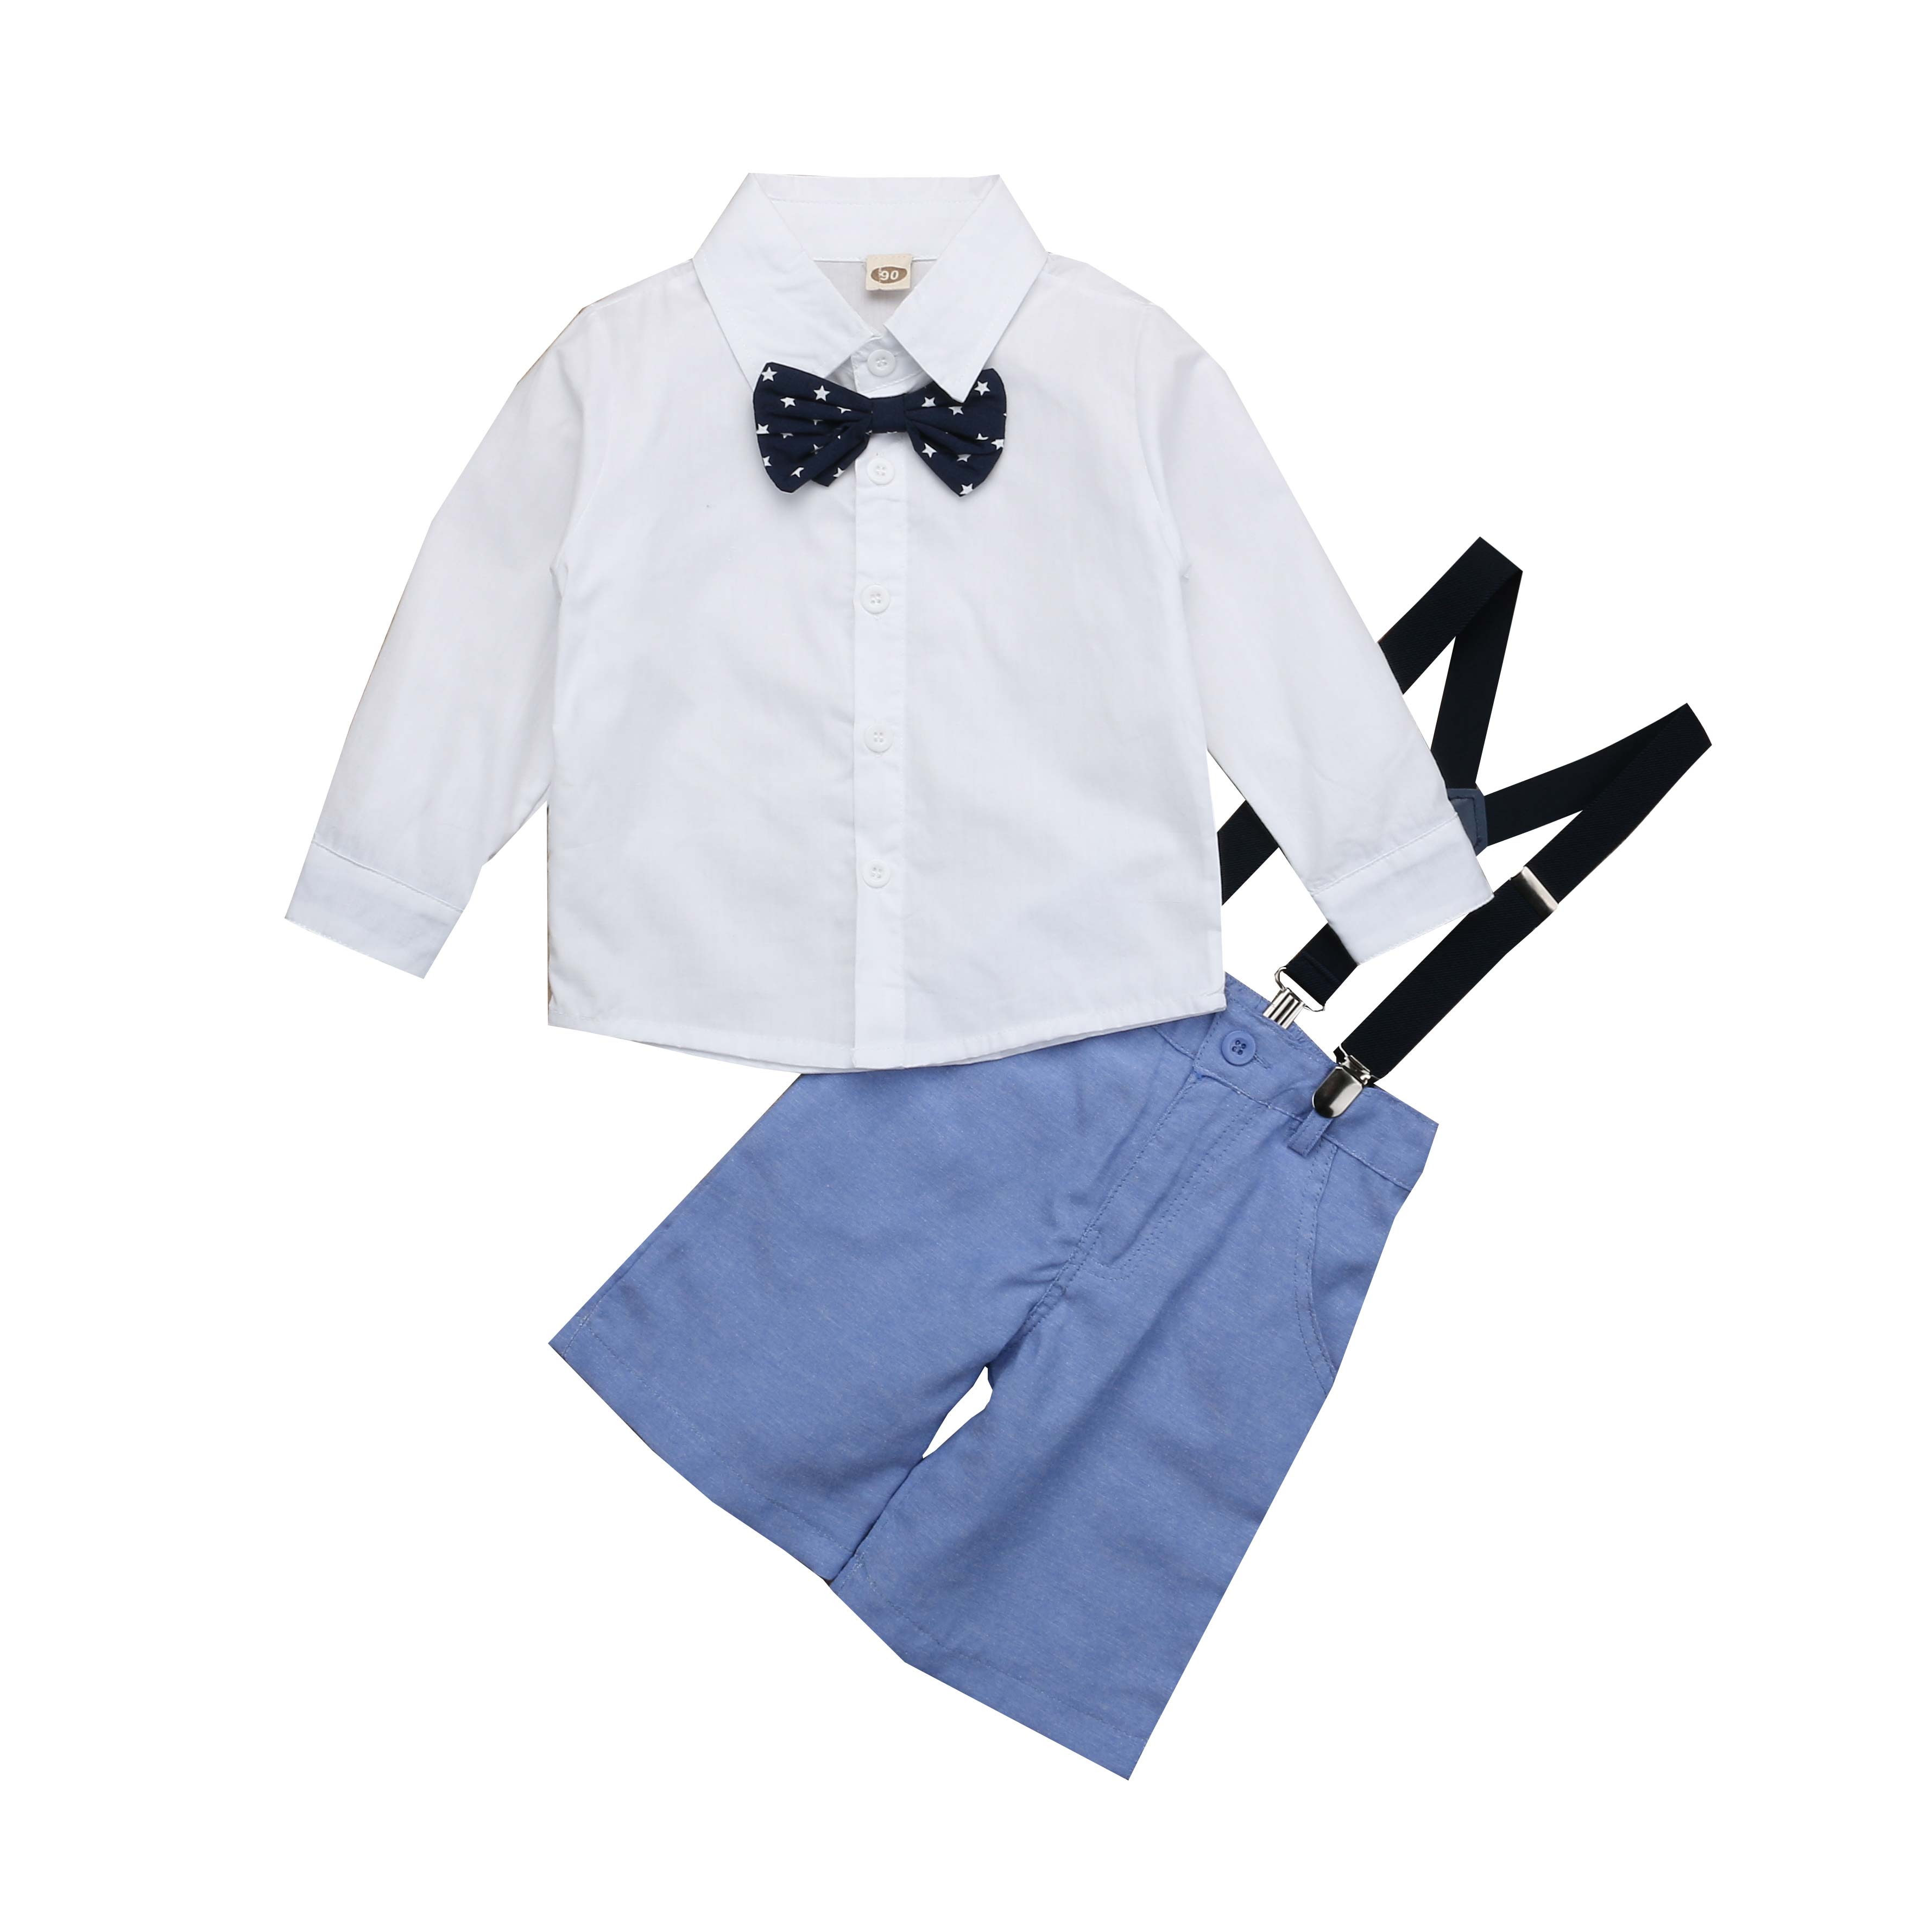 2019 Newest Style Kid Toddler Baby Boy White Long Sleeve Top+bib Pants Spring Autumn Outfits Clothes Set Gentleman Size 2-7years Colours Are Striking